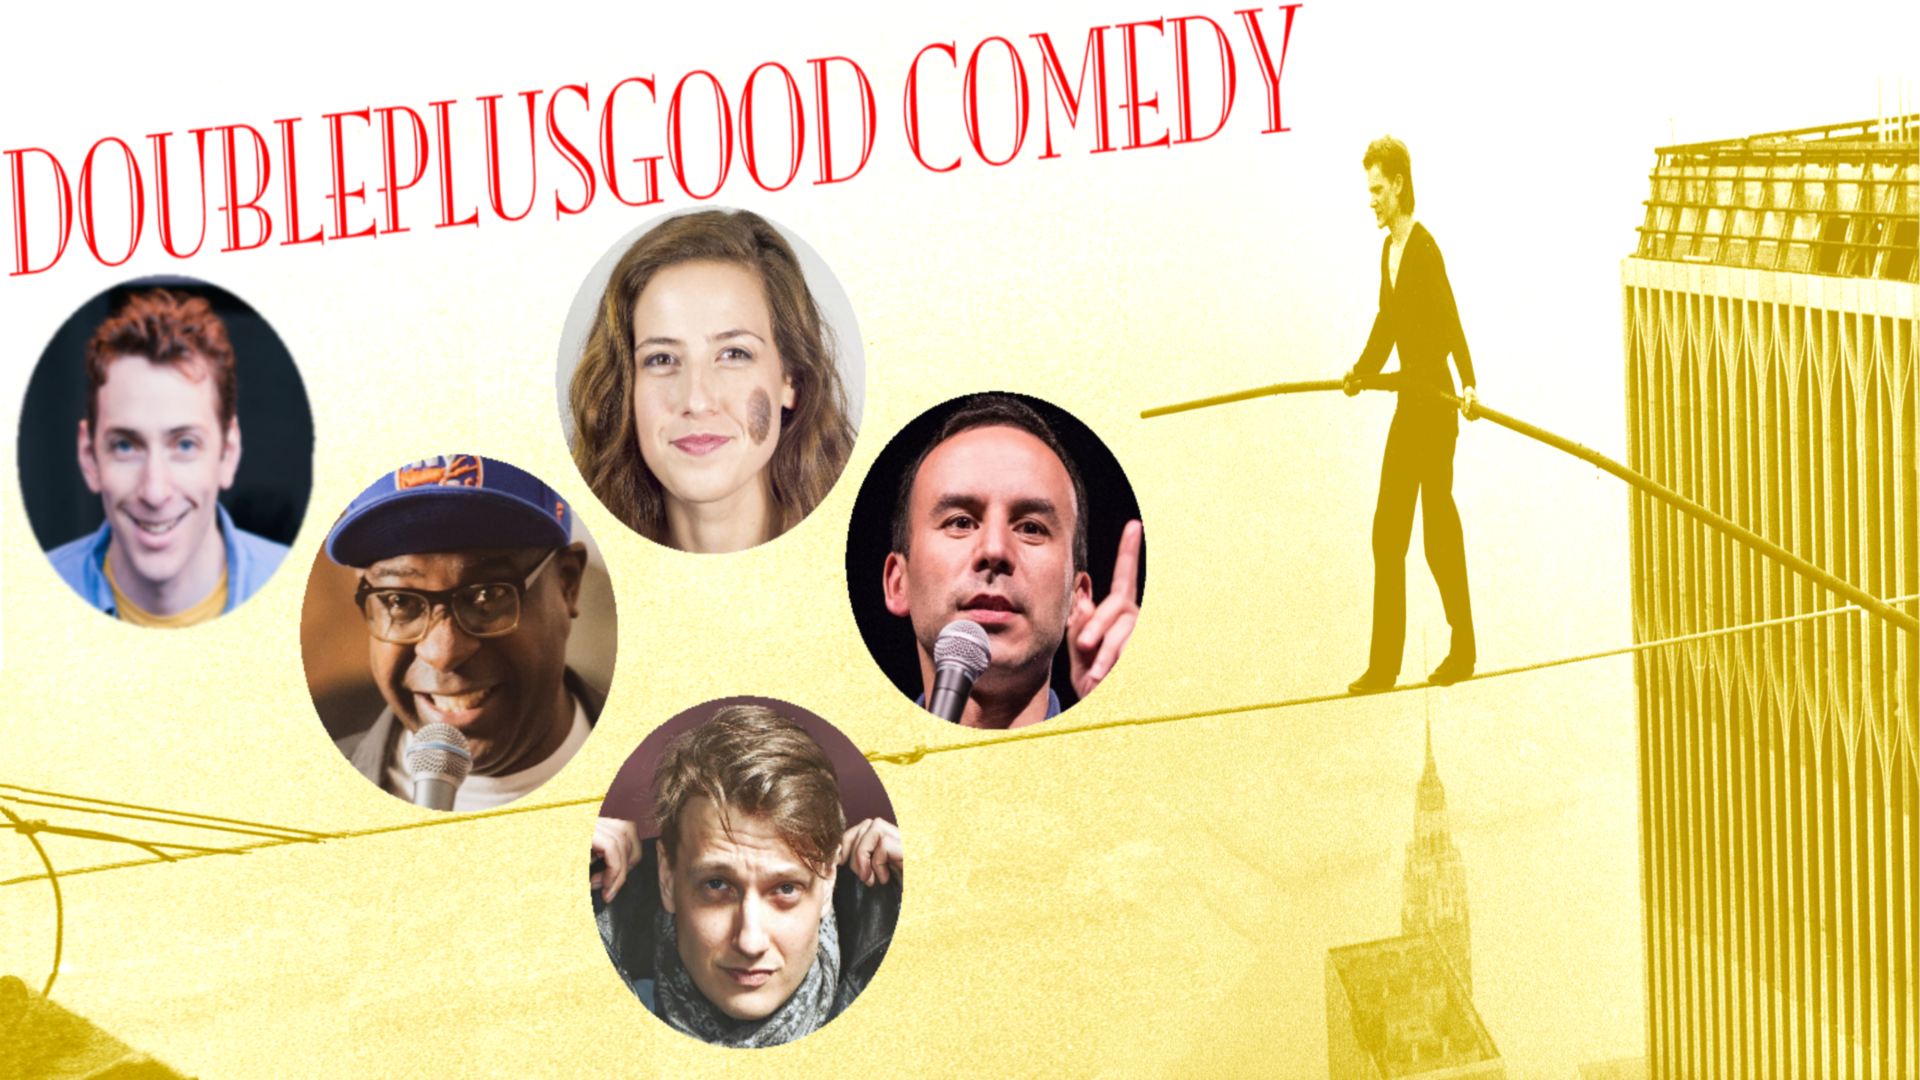 DoublePlusGood Comedy - 7:30PM: